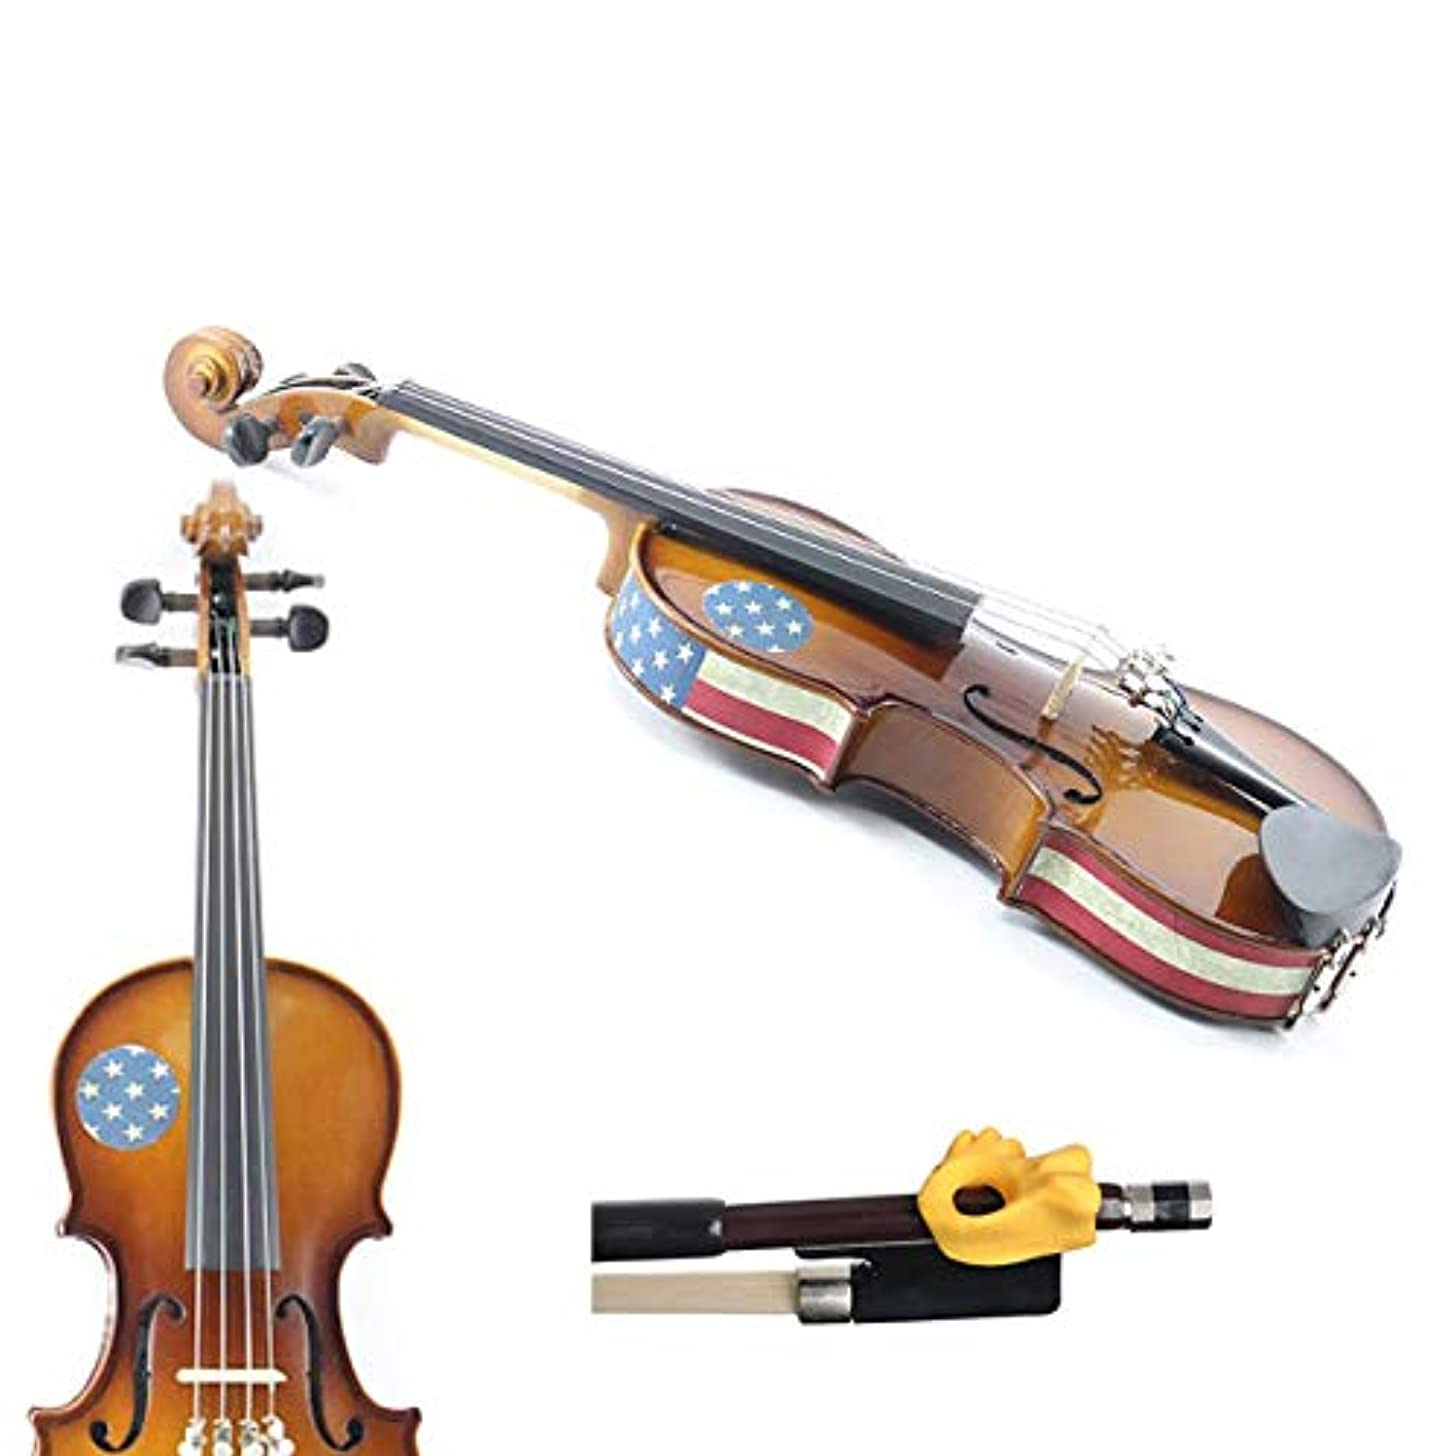 Violin Teaching Aid Pack - Hold Fish Violin Yellow Pinky Support w/American Flag Patriotic Violin Skins - Removable Violin Decals - Fits 1/16 Size Violins (Violin not included)